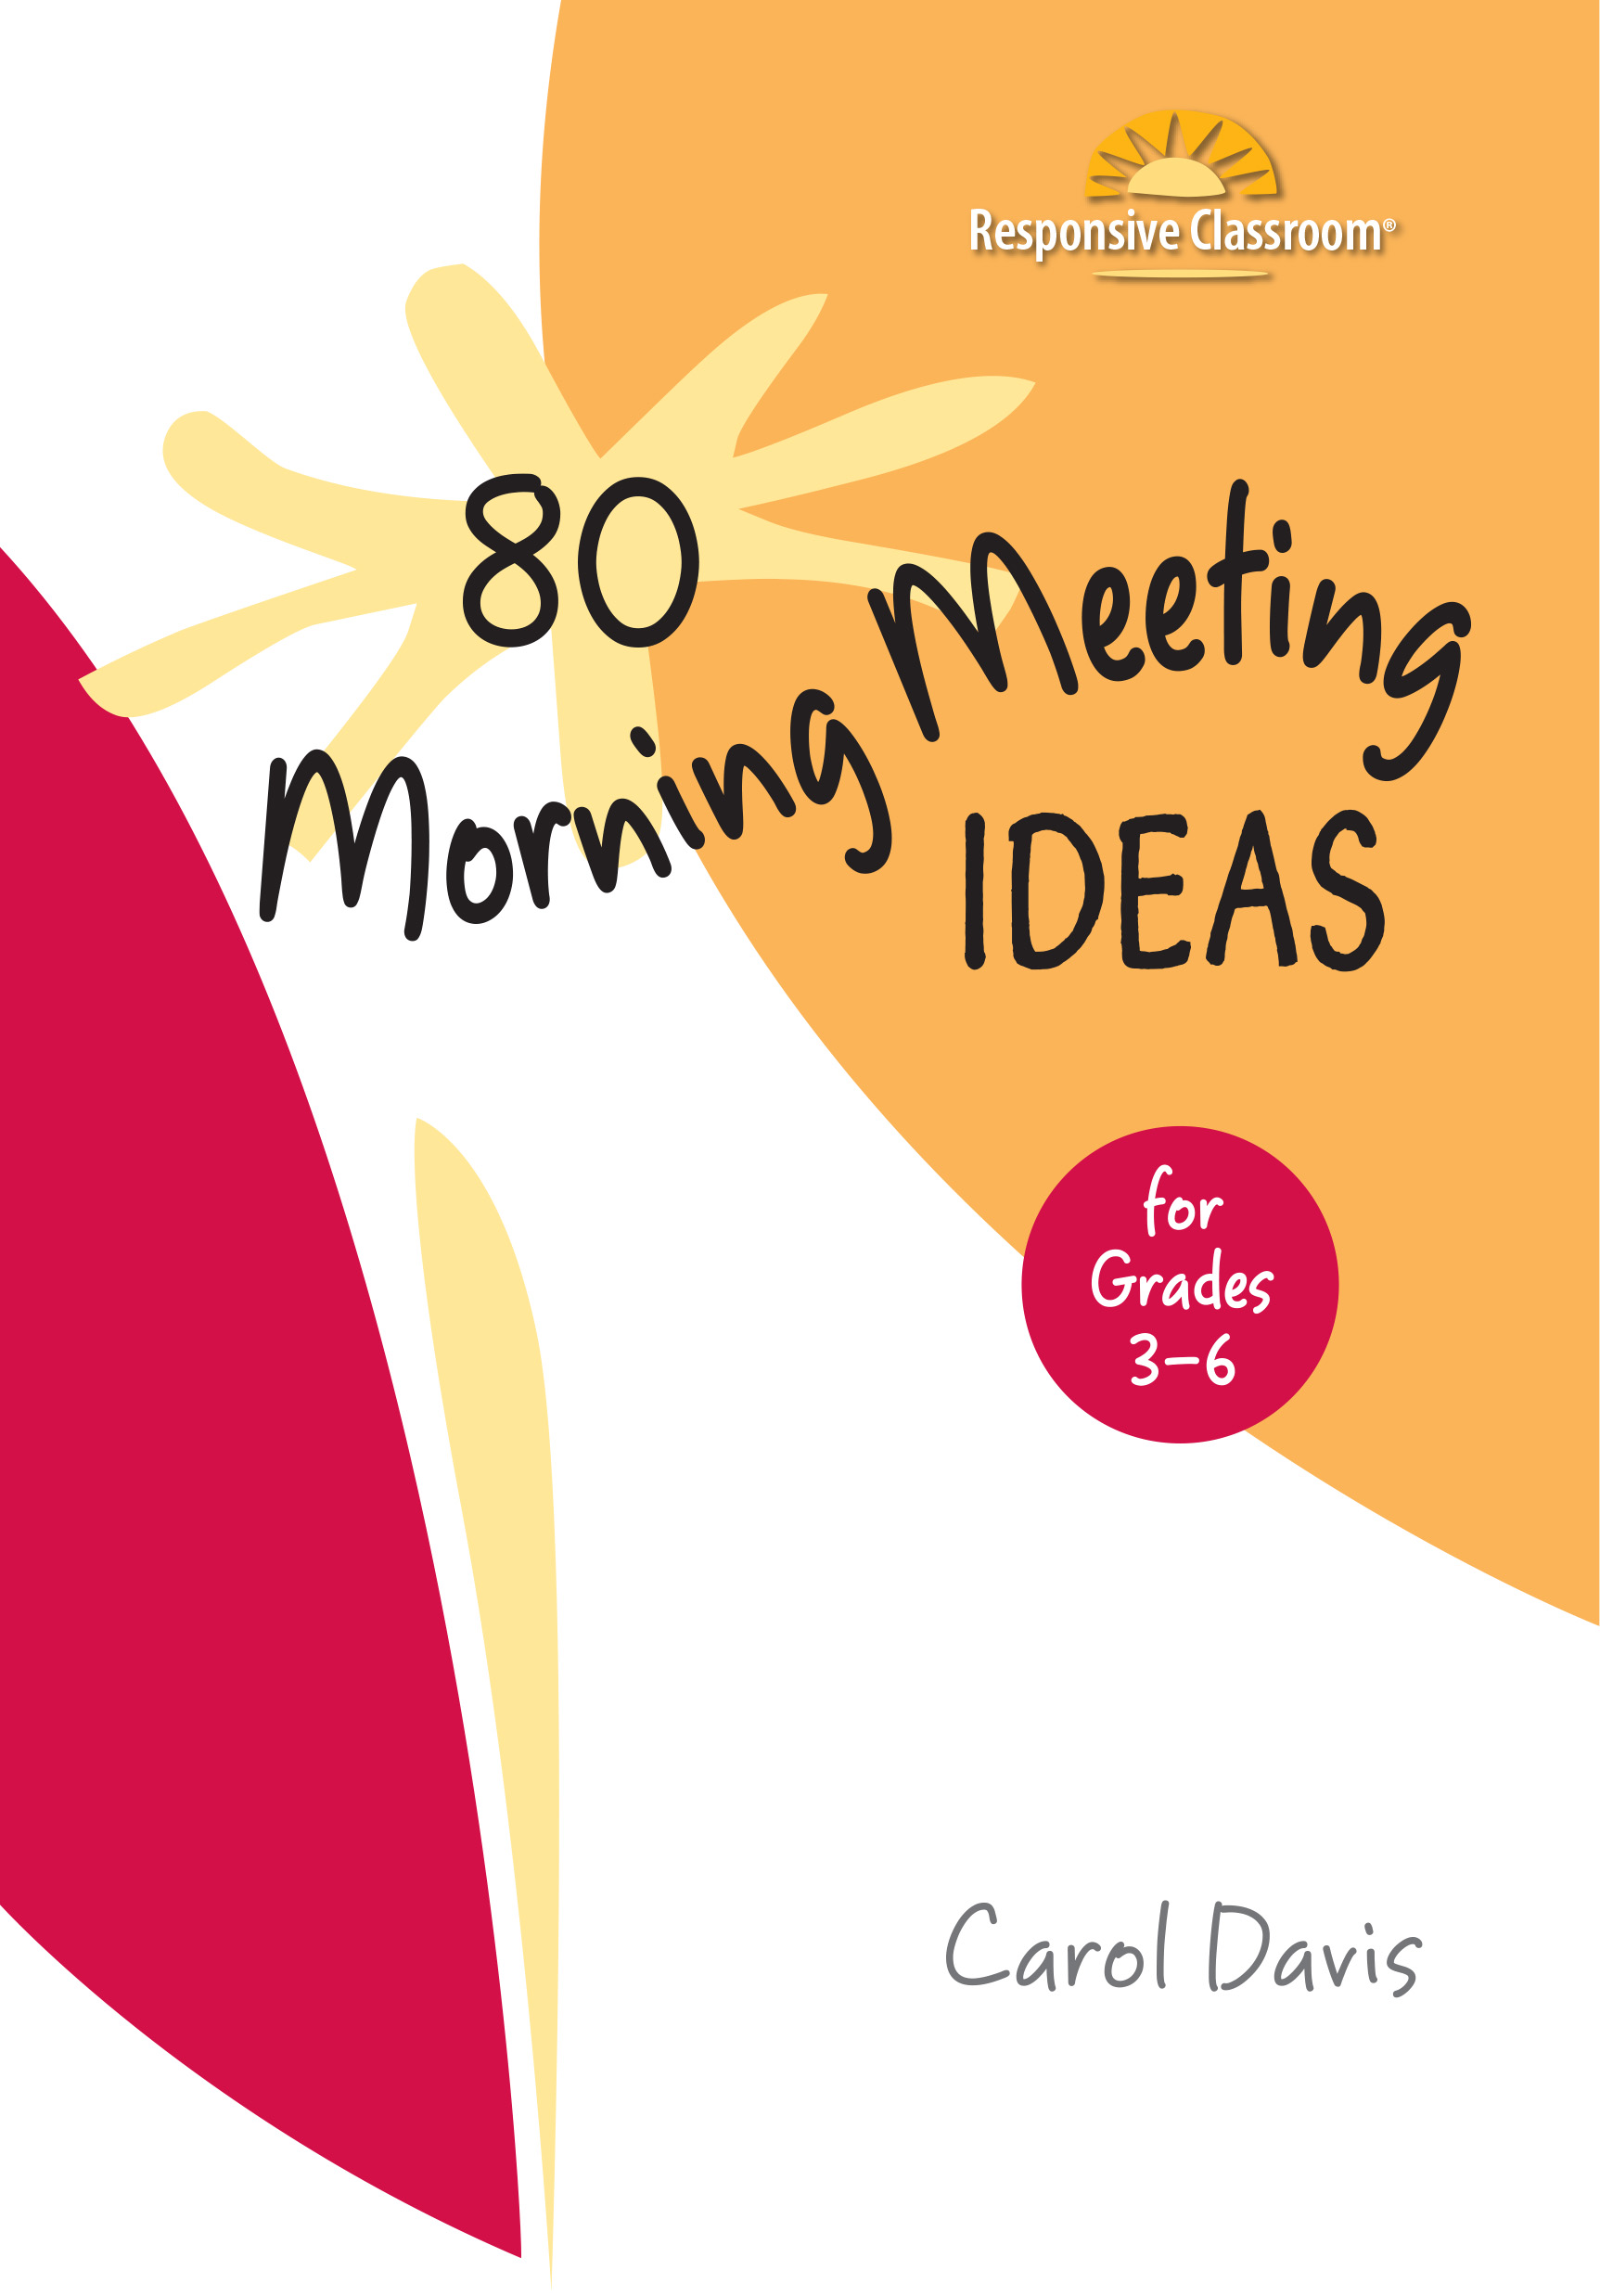 Morning meeting book responsive classroom 80 morning meeting ideas for grades 3 6 m4hsunfo Choice Image